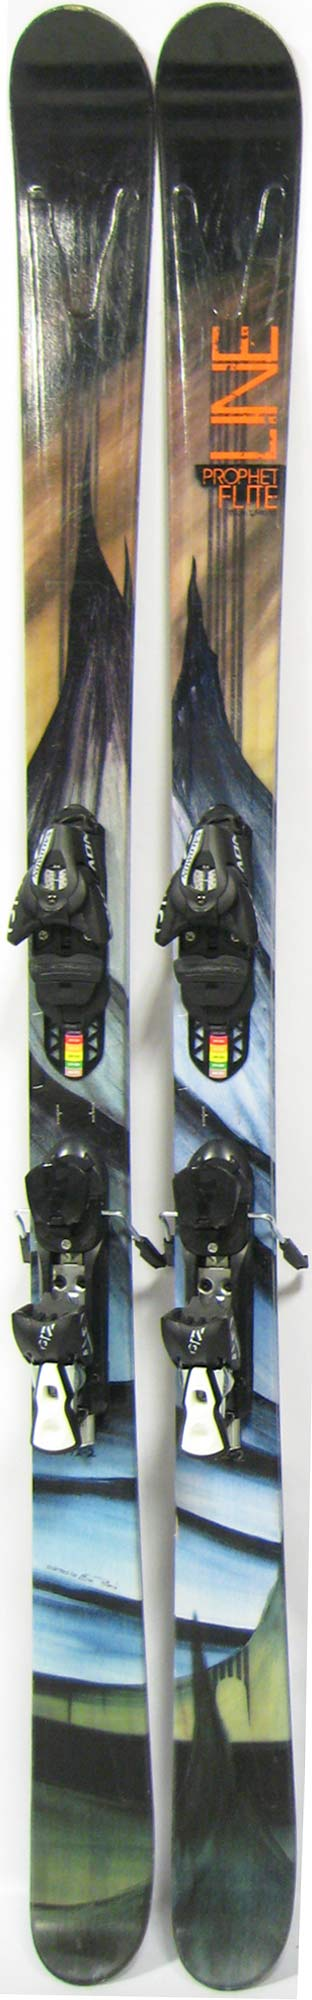 Topsheets of 2012 Line Prophet Flite Skis For Sale